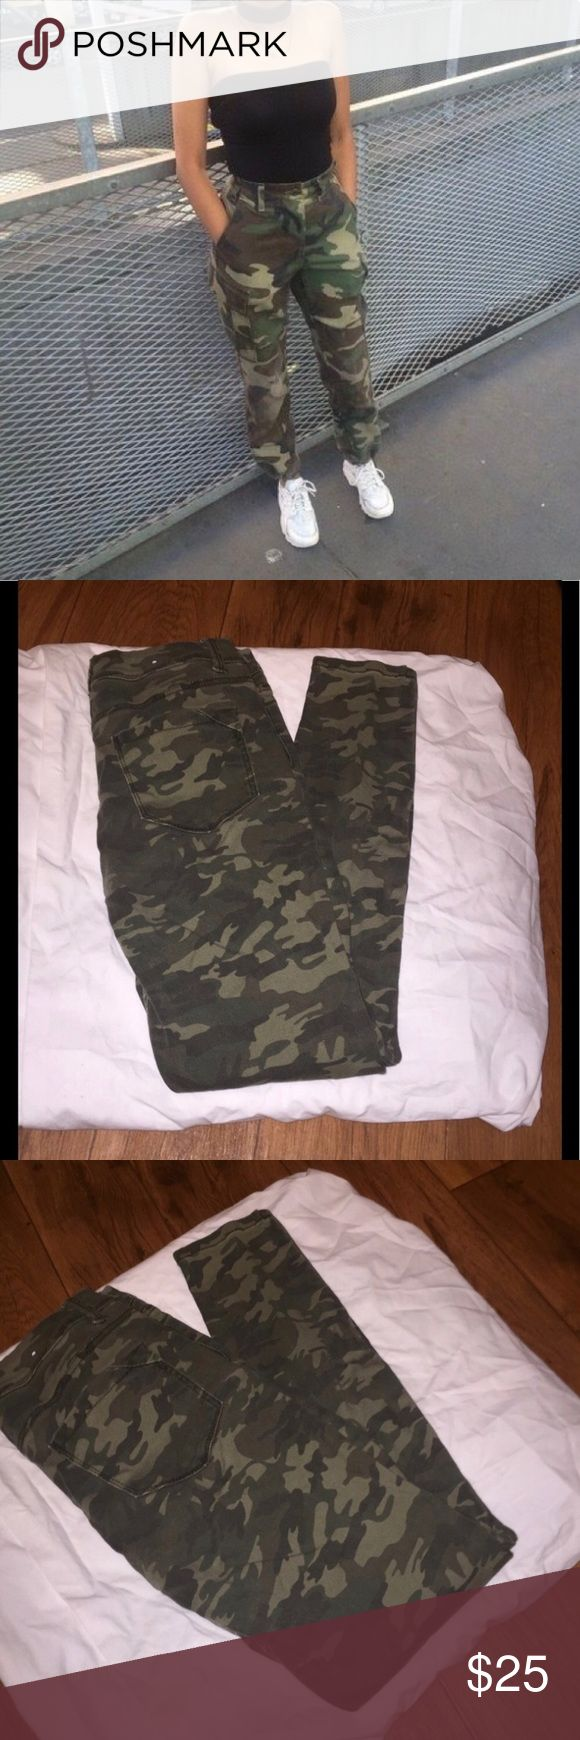 Camouflage skinny jeans Camouflage Camo High Rise waisted Skinny Jeans. Size 5. Perfect condition. Mossimo by target. New with out tags. Mossimo Supply Co. Jeans Skinny